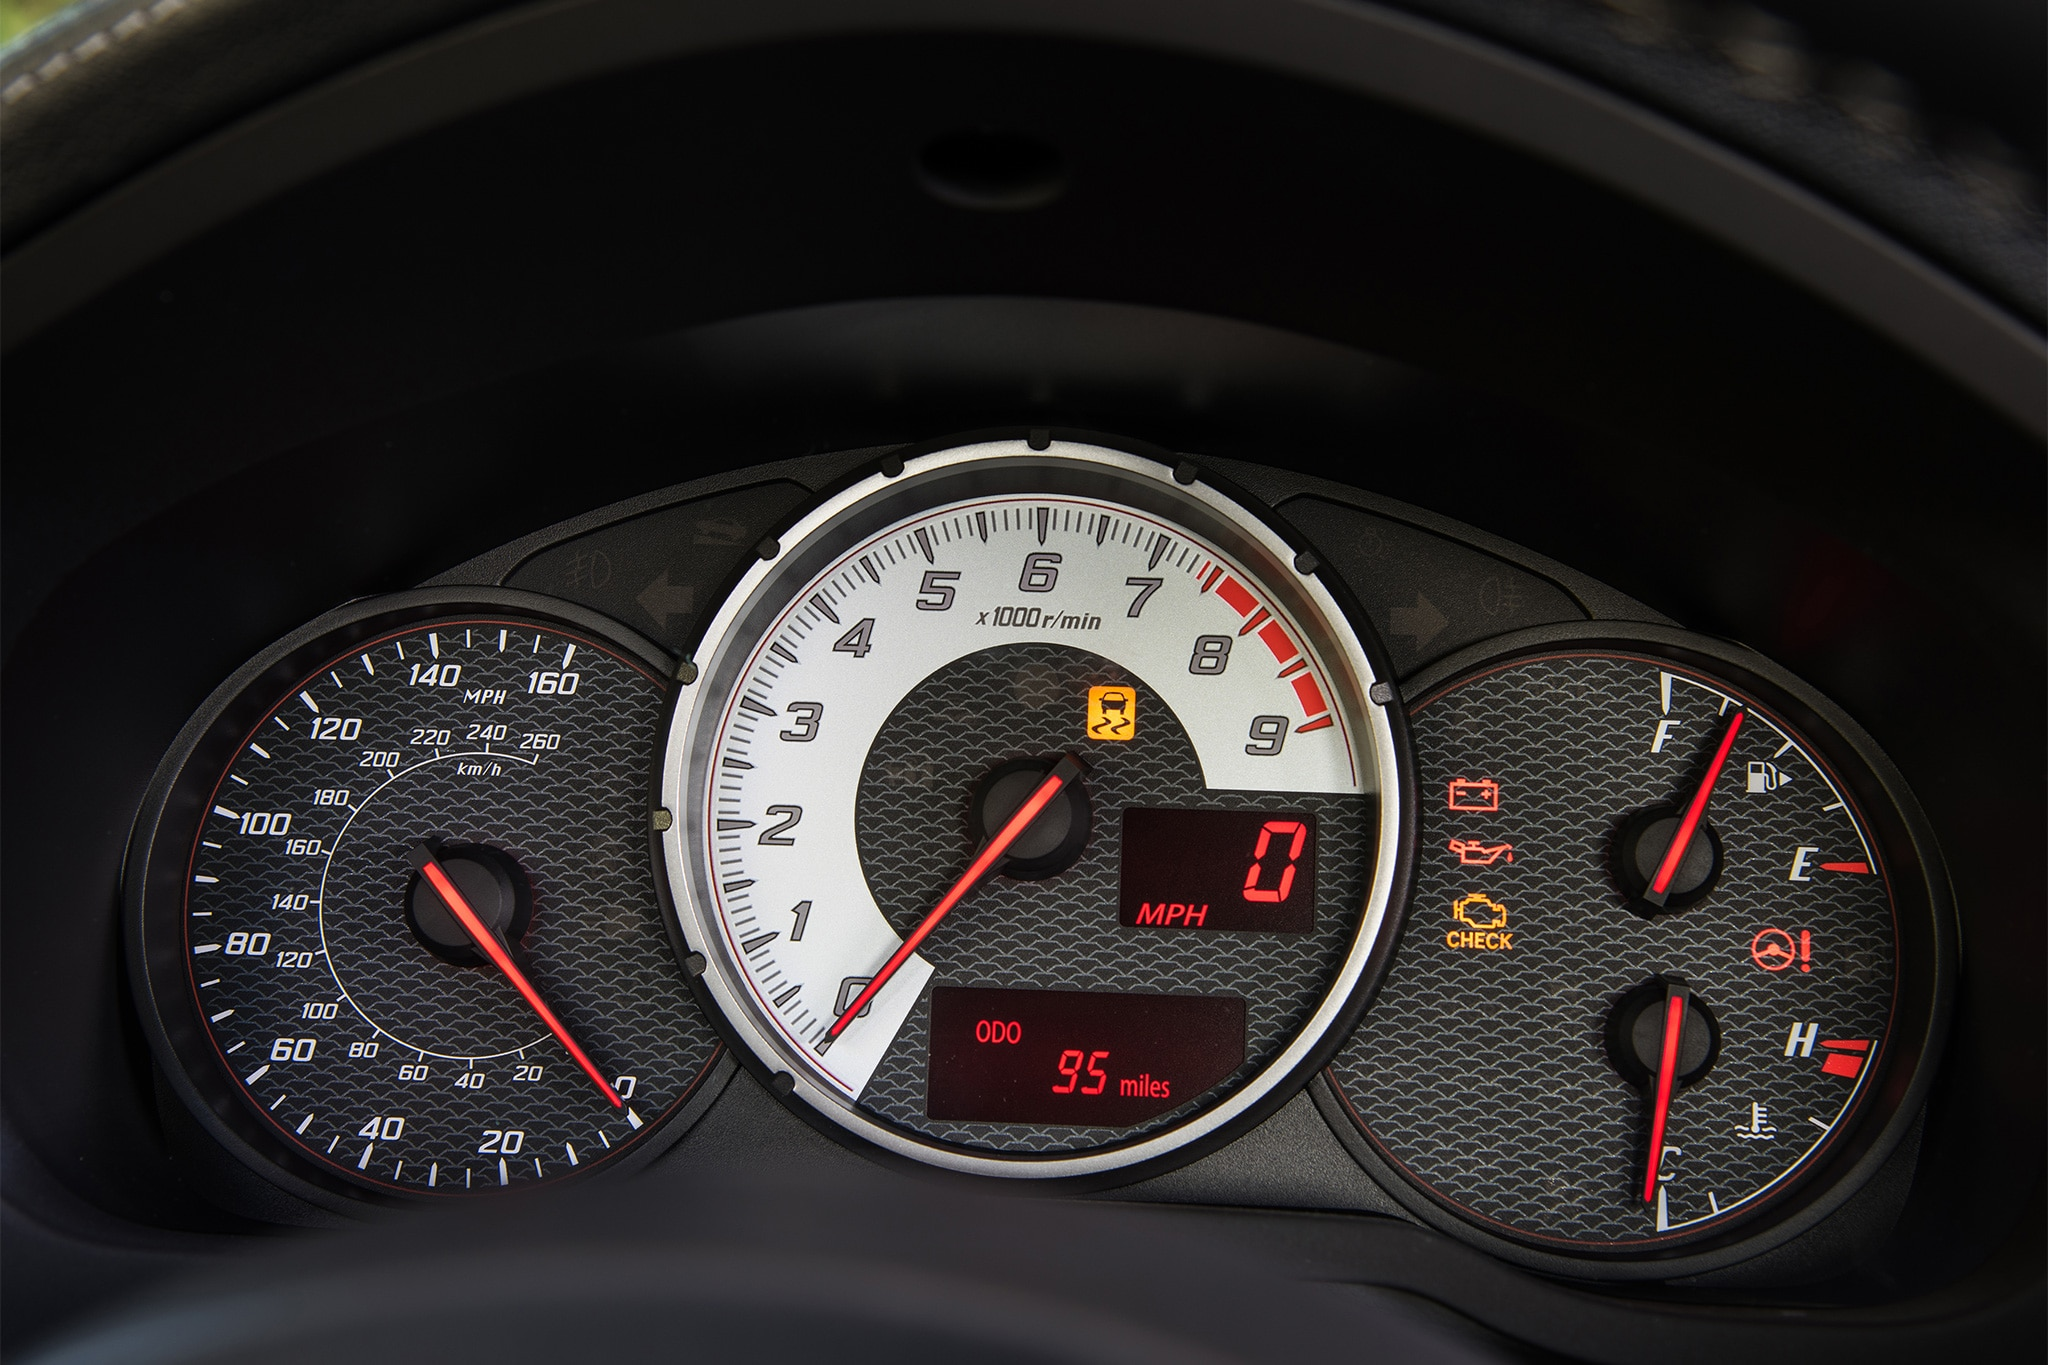 2017 Toyota 86 instrument panel